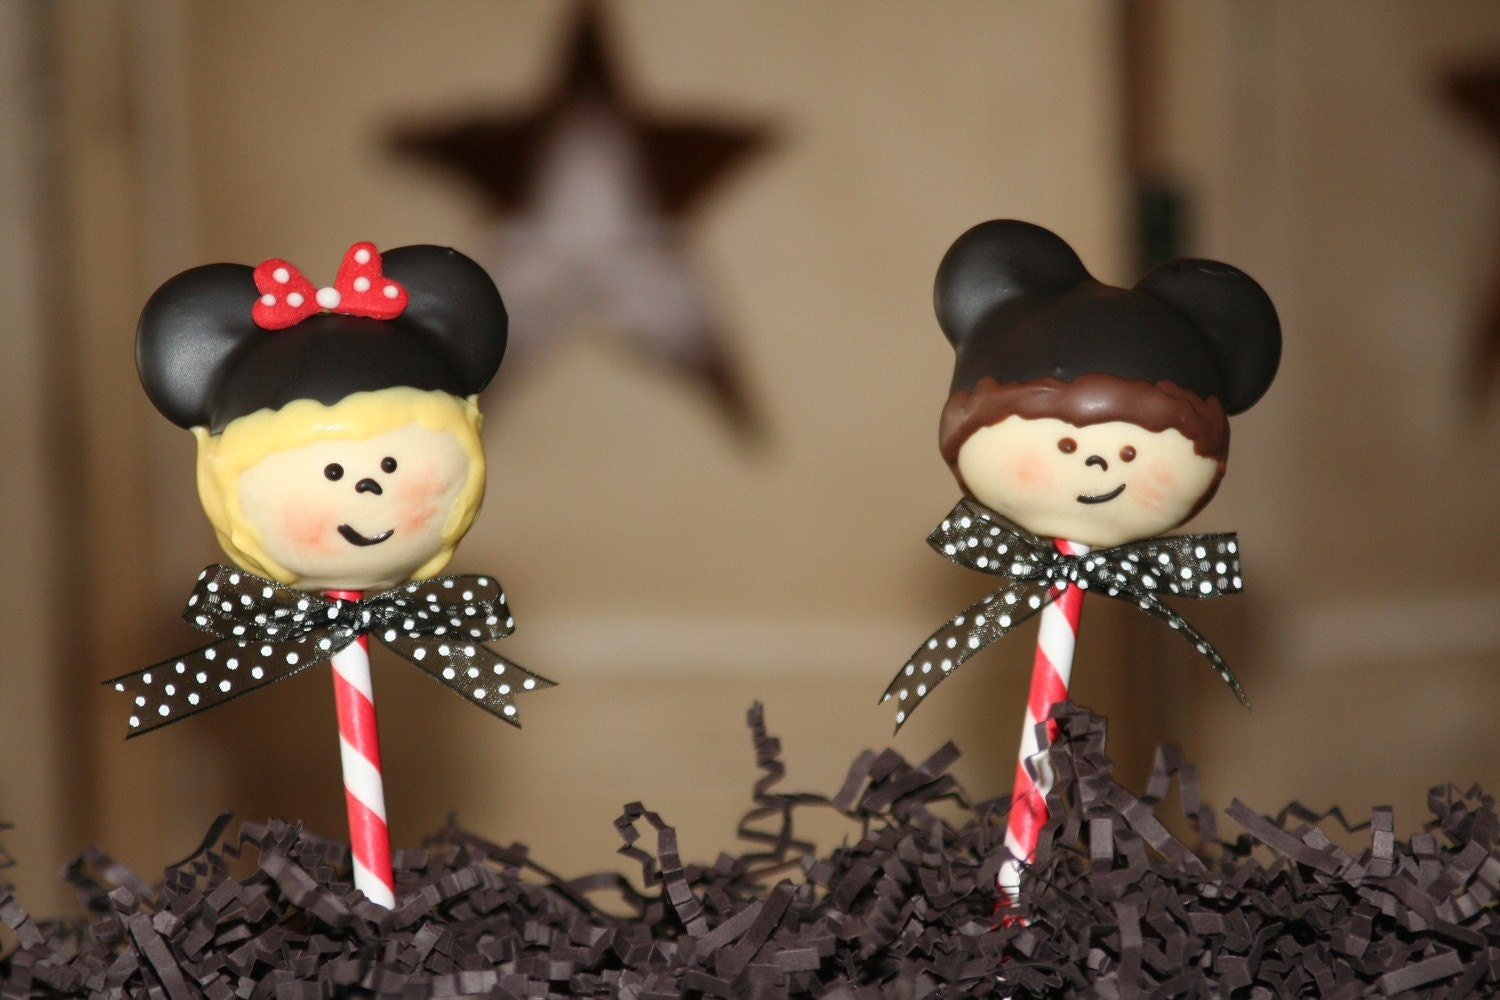 Mom's Killer Cakes & Cookies ORIGINAL DESIGN Mickey  and Minnie Mouse Disneyland Kids Family Customized For YOUR Family Cake Pops